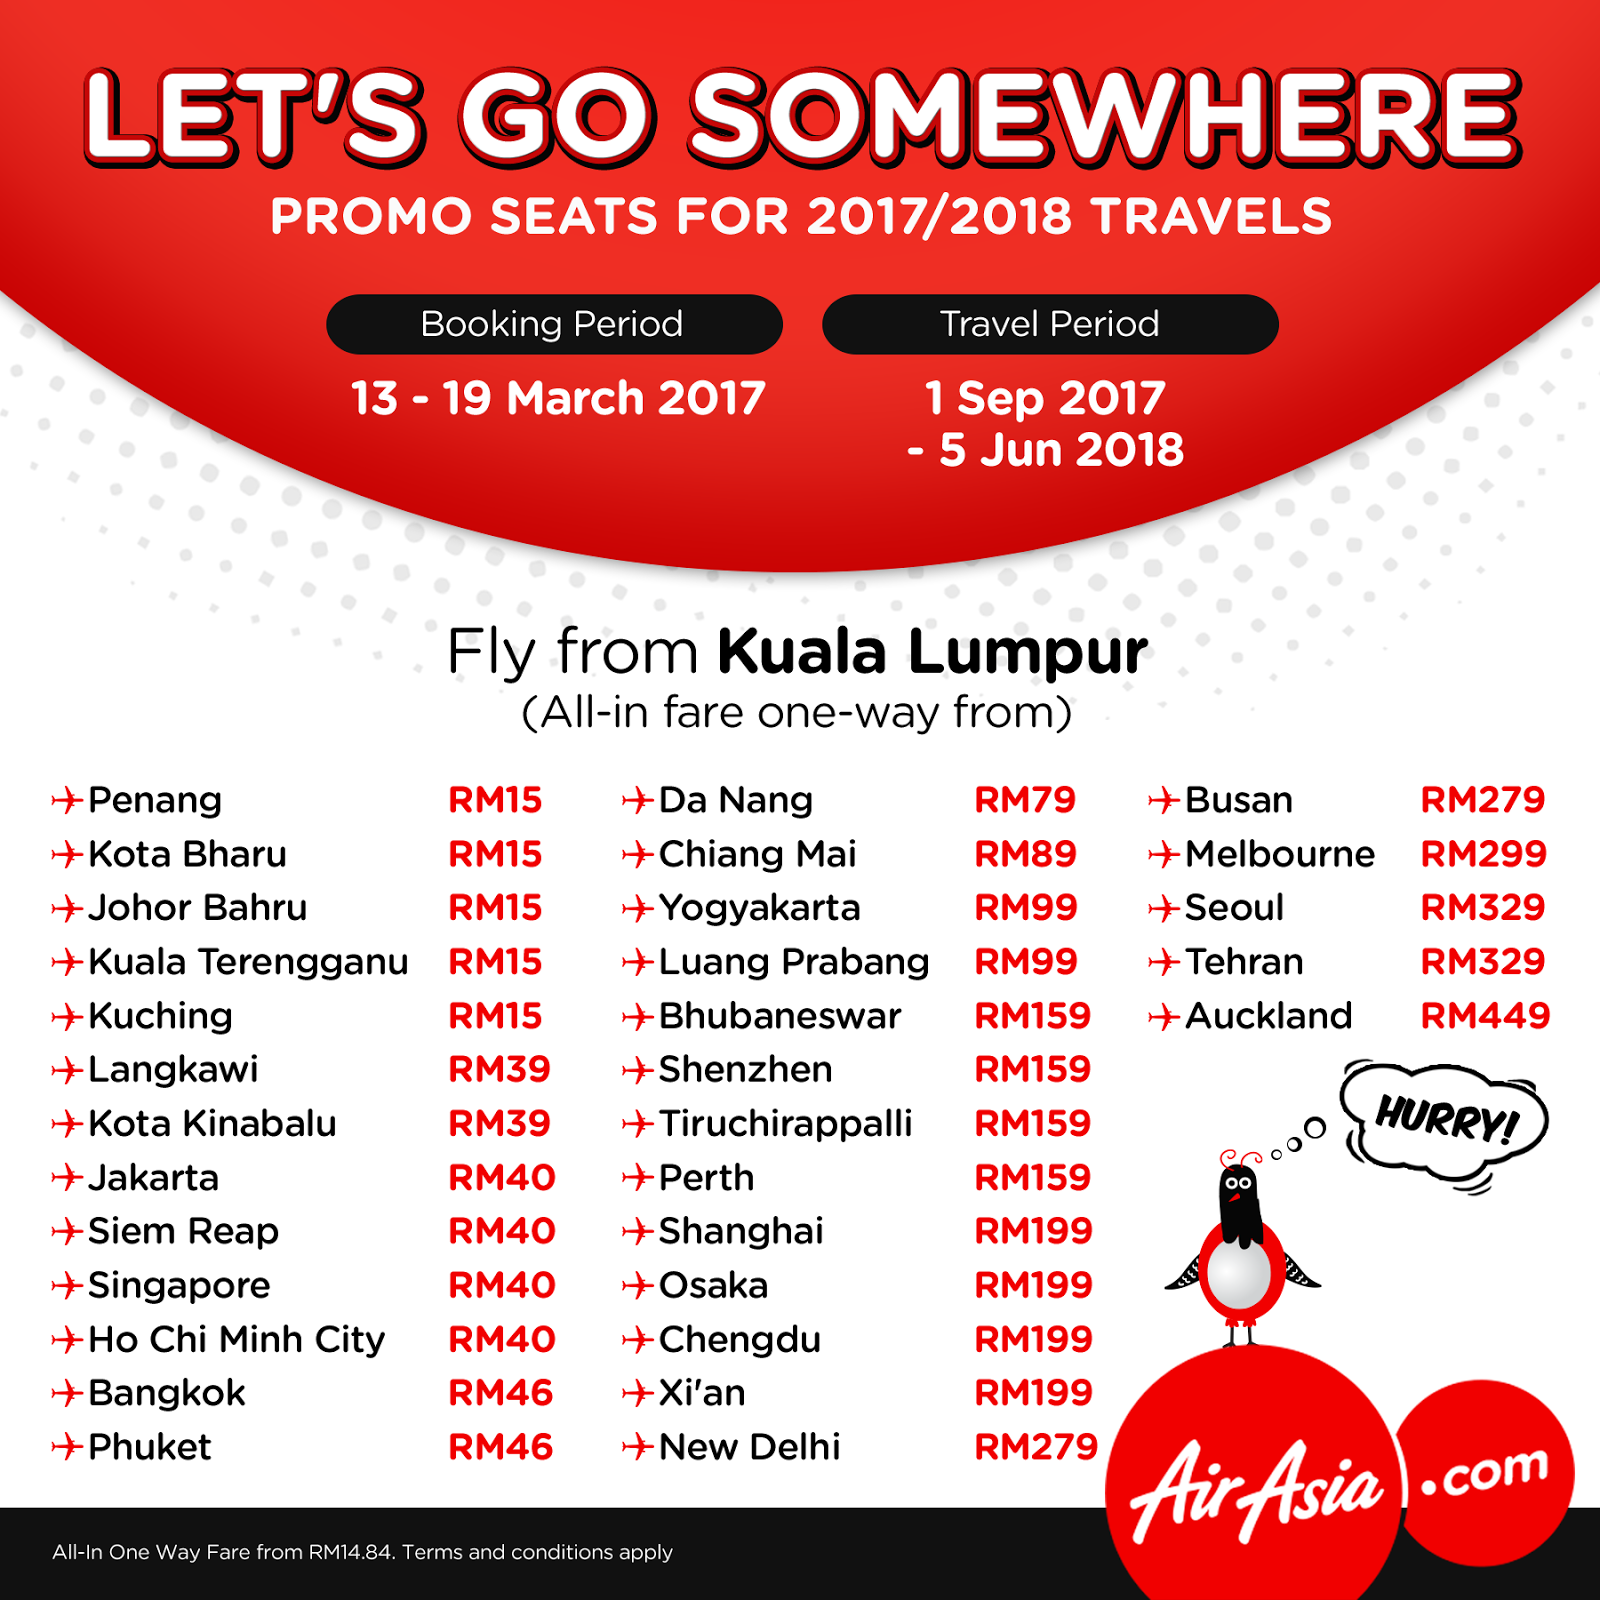 Airasia Promo Tickets In December Tiket2's unique Promo Flight Tracker detects the best promotional offers each month. Be sure to check out Air Asia's cheapest priced flights and the most affordable options available each month and snap up a great deal!